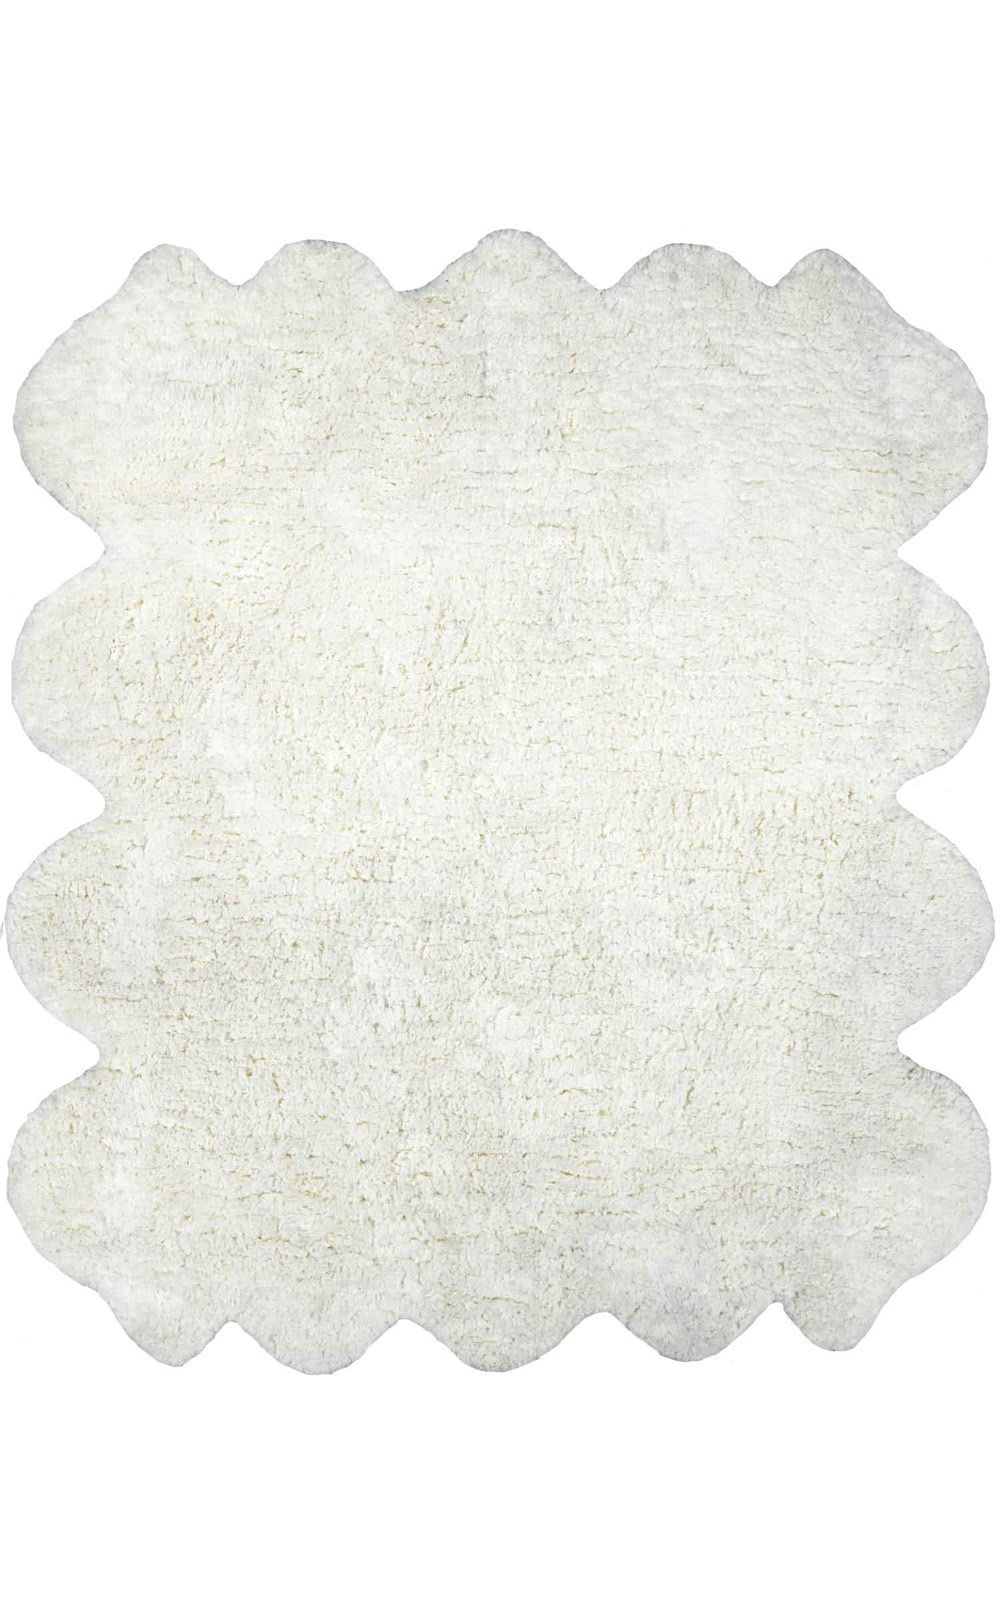 nuloom octo pelt faux sheepskin animal inspirations area rug collection